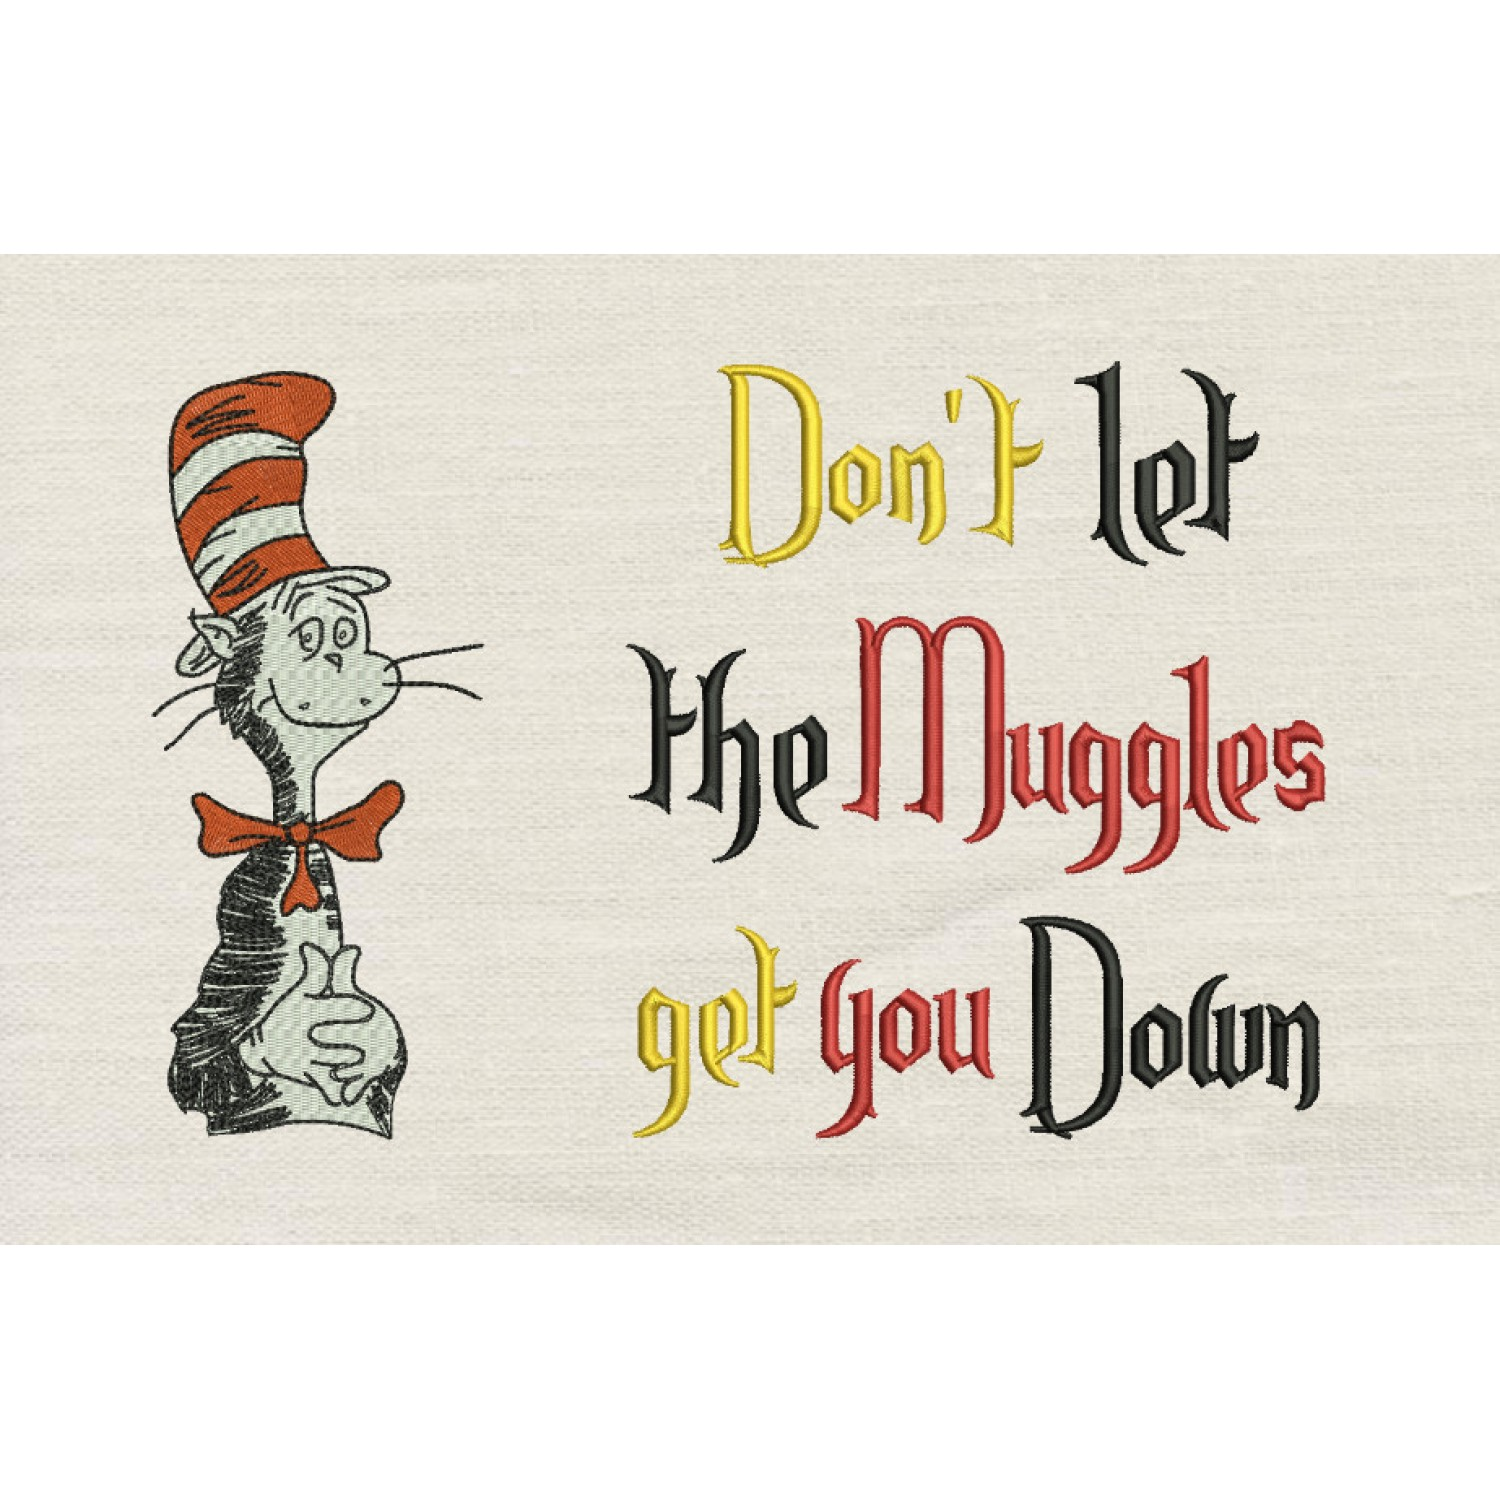 Dr. Seuss stitches with don't let